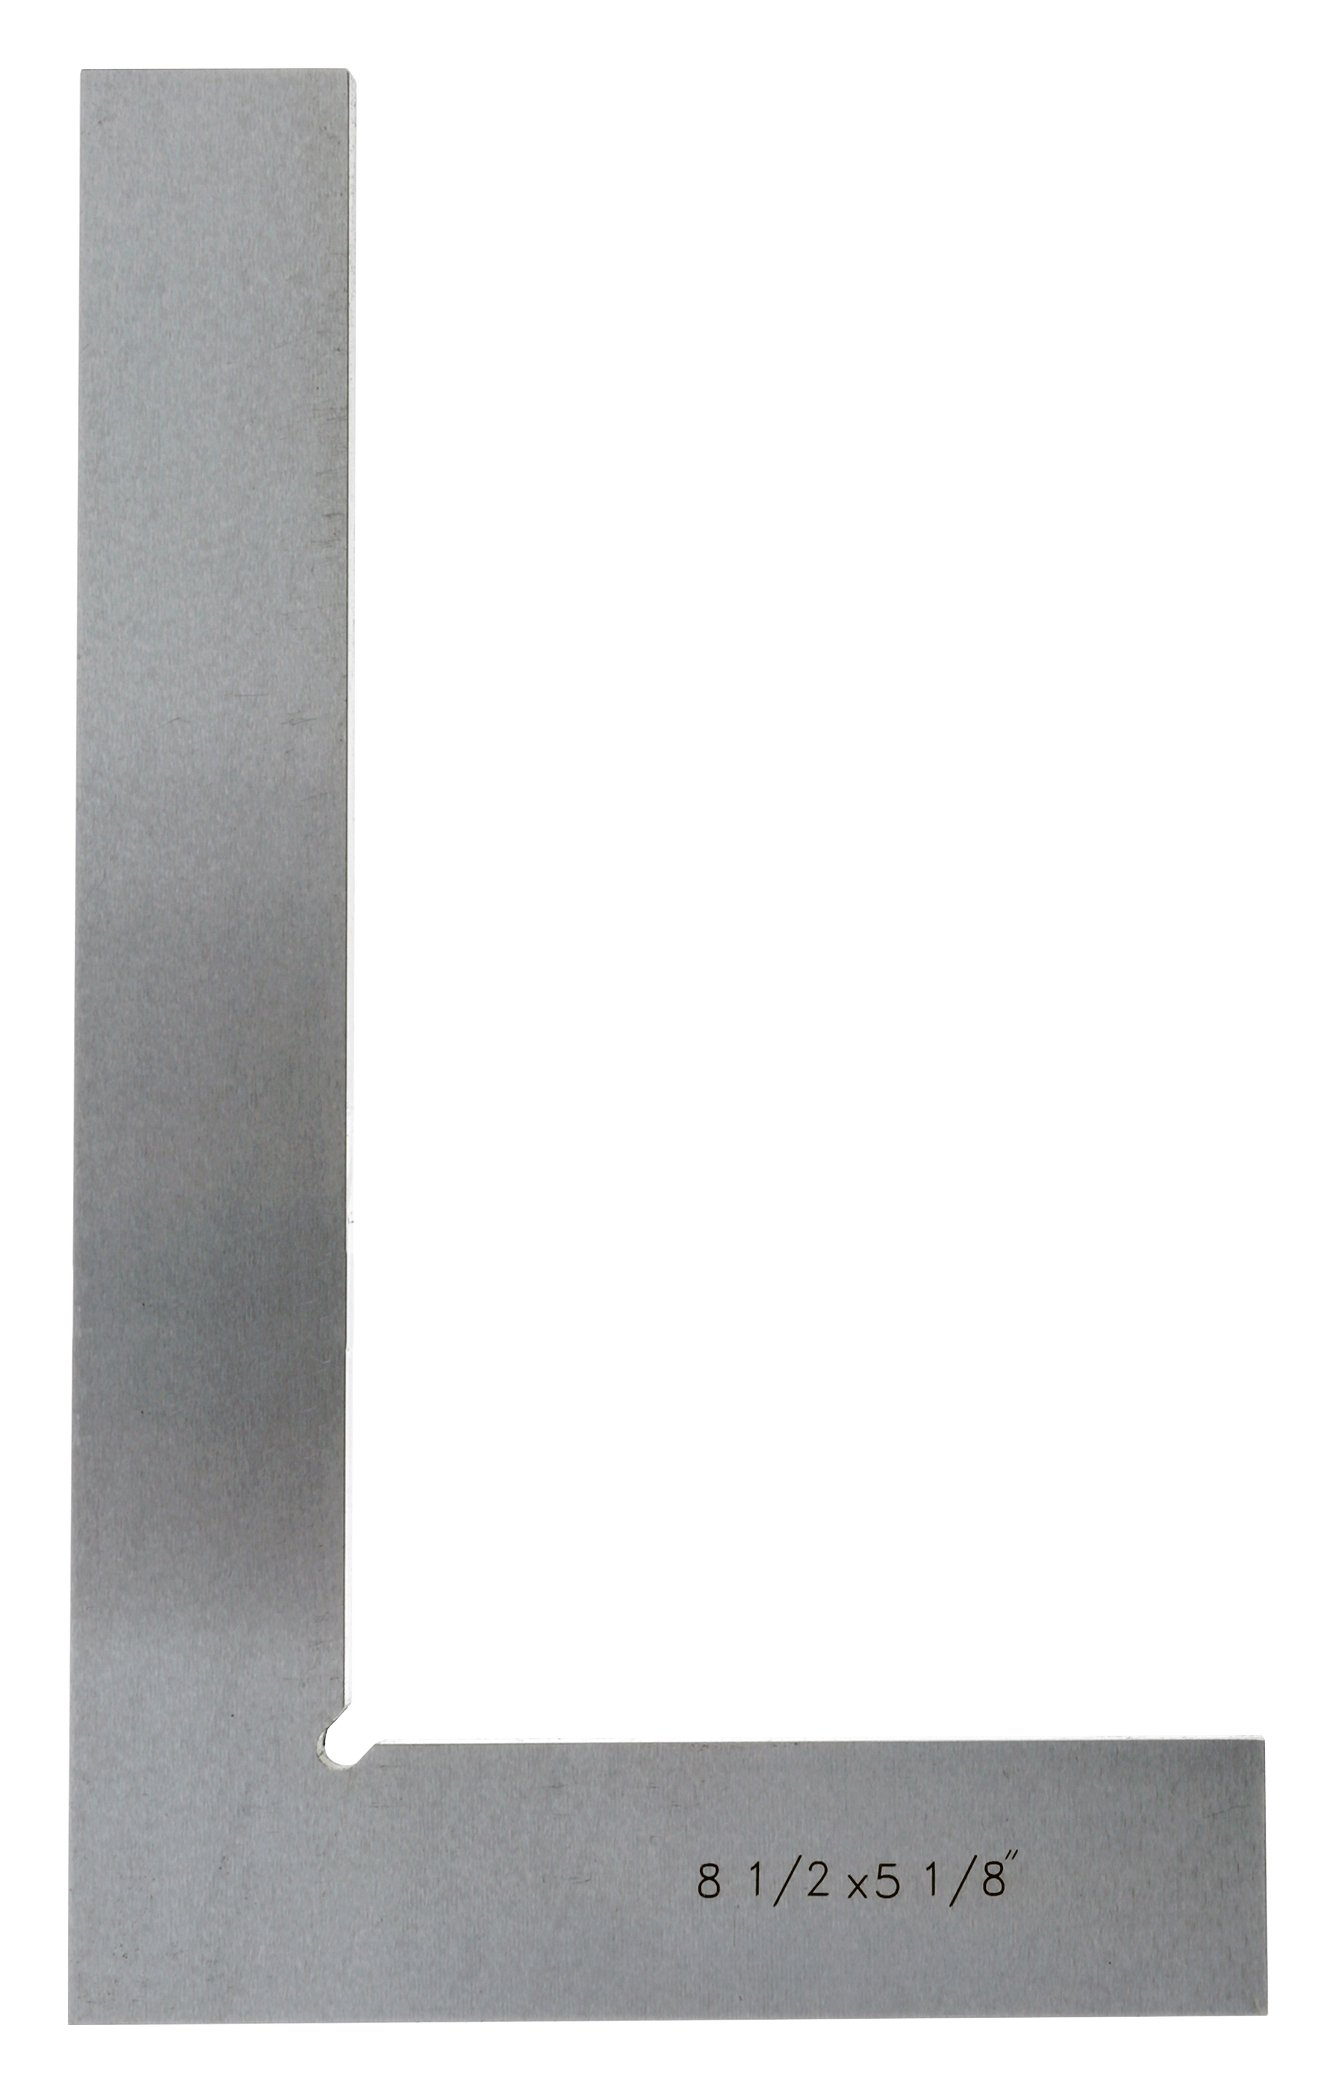 Grizzly H2695 Straight Edge Super Precise Flat Stee Length Squares, 5-1/8-Inch by 8-1/2-Inch